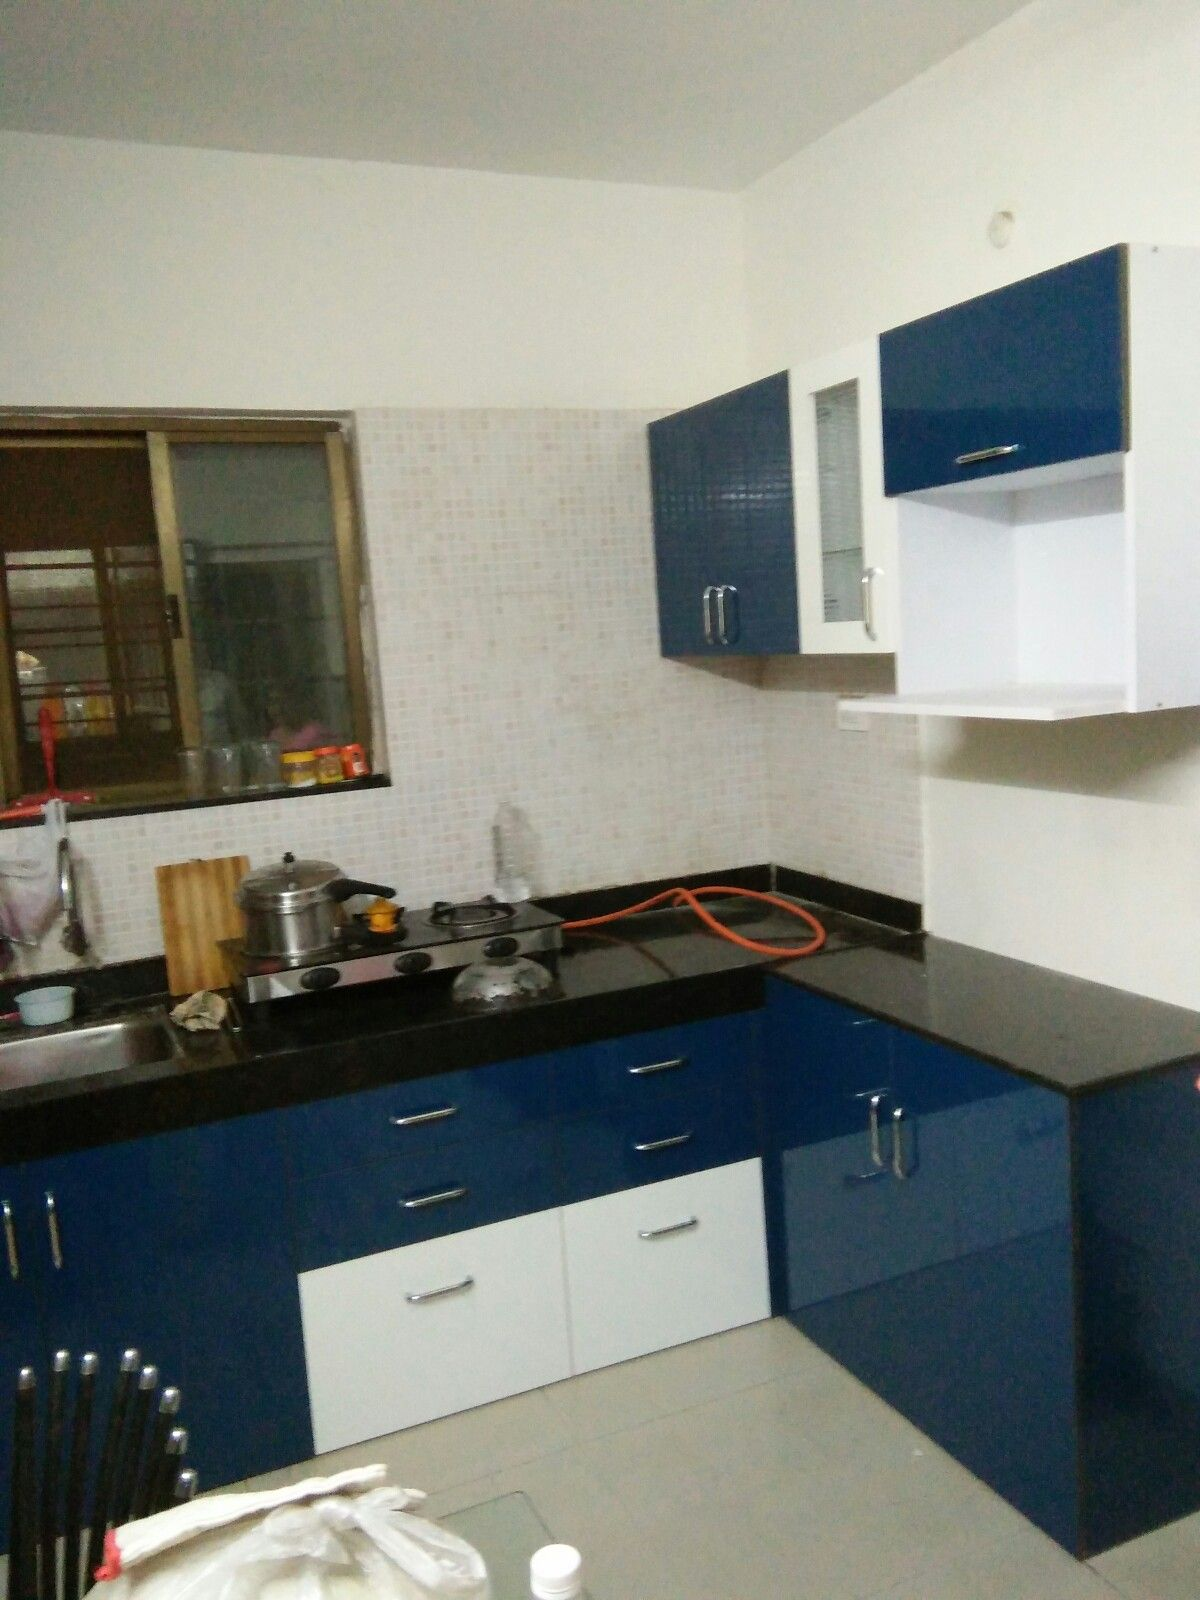 L Shaped Modular Kitchen Wall Unit Wall Cabinets Microwave